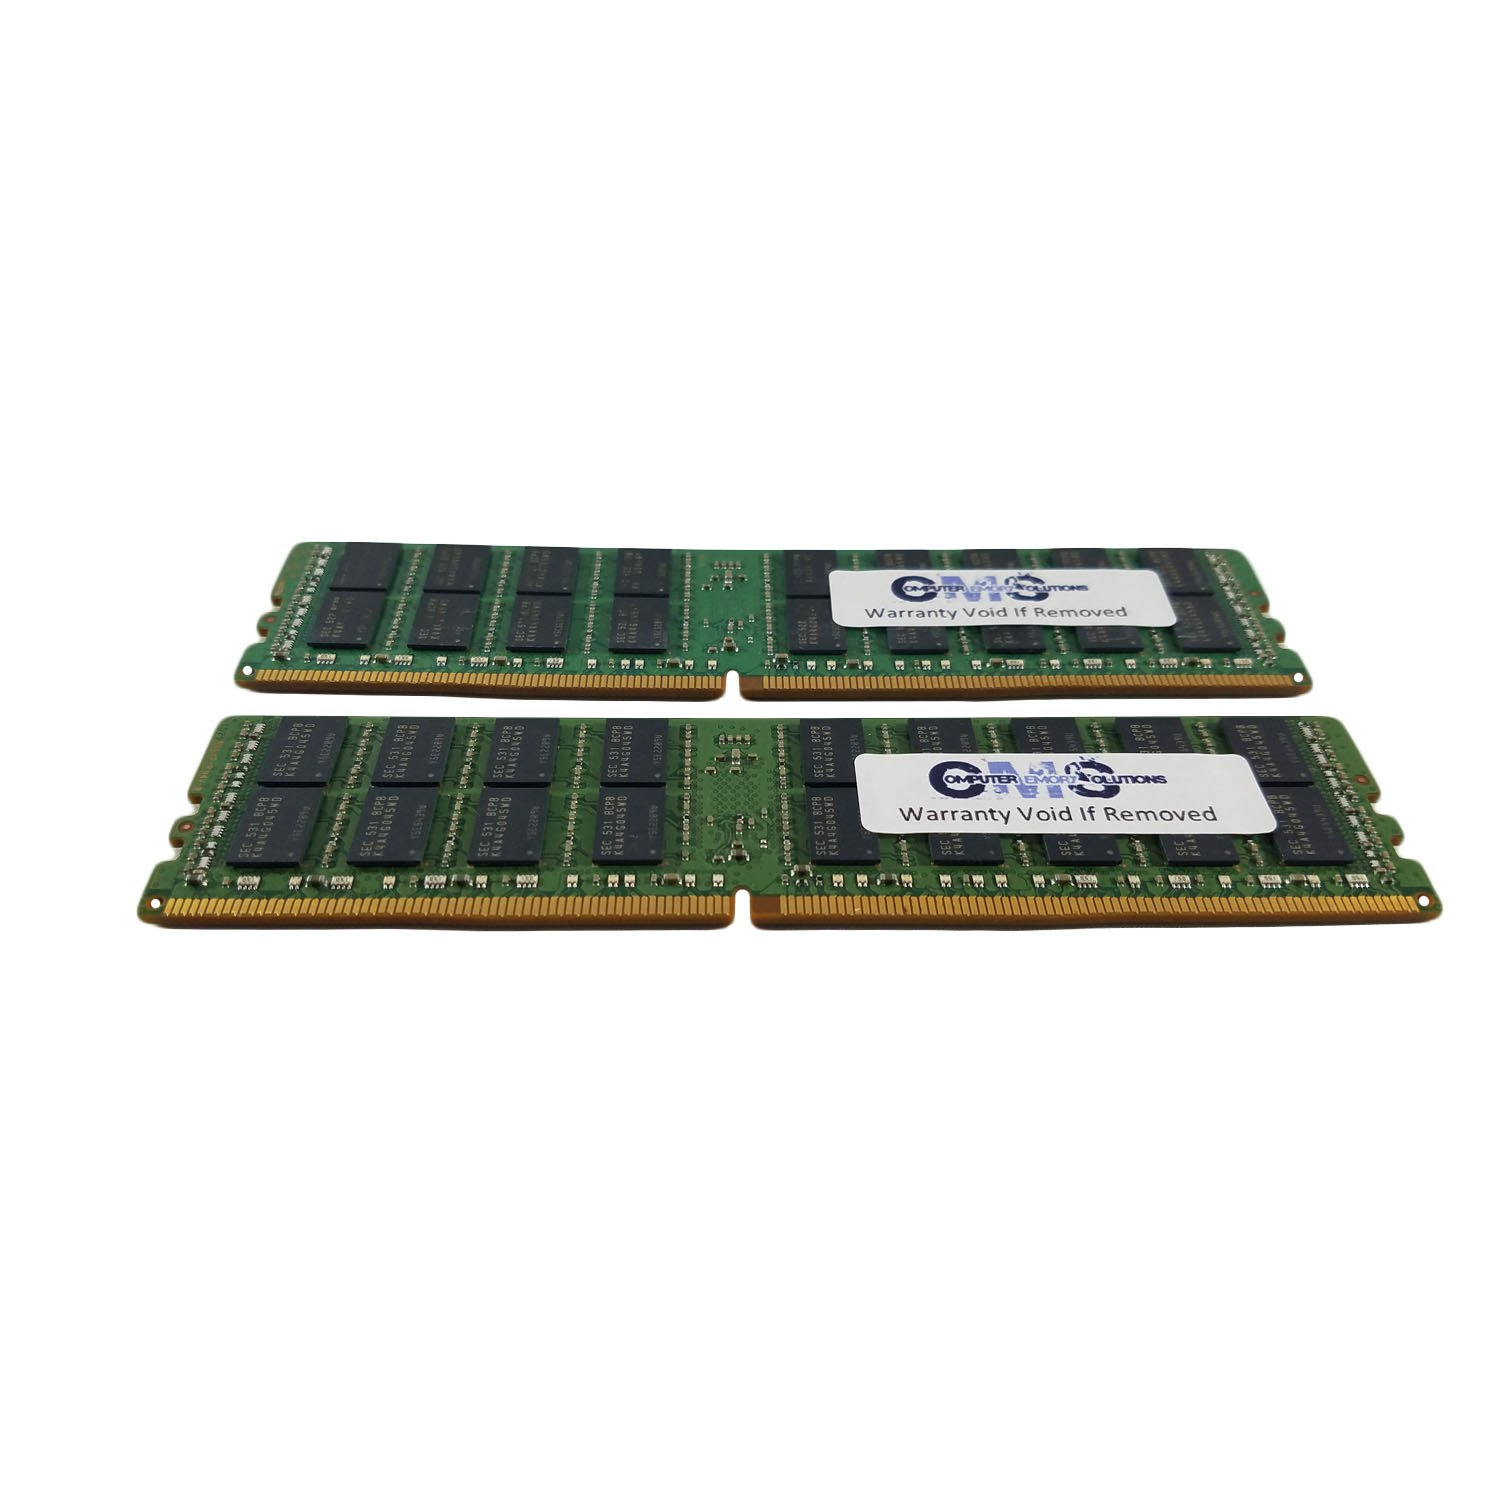 2X16Gb Memory Ram Compatible with Dell Poweredge R430 Ddr4 EccR For Servers Only By CMS B5 32Gb